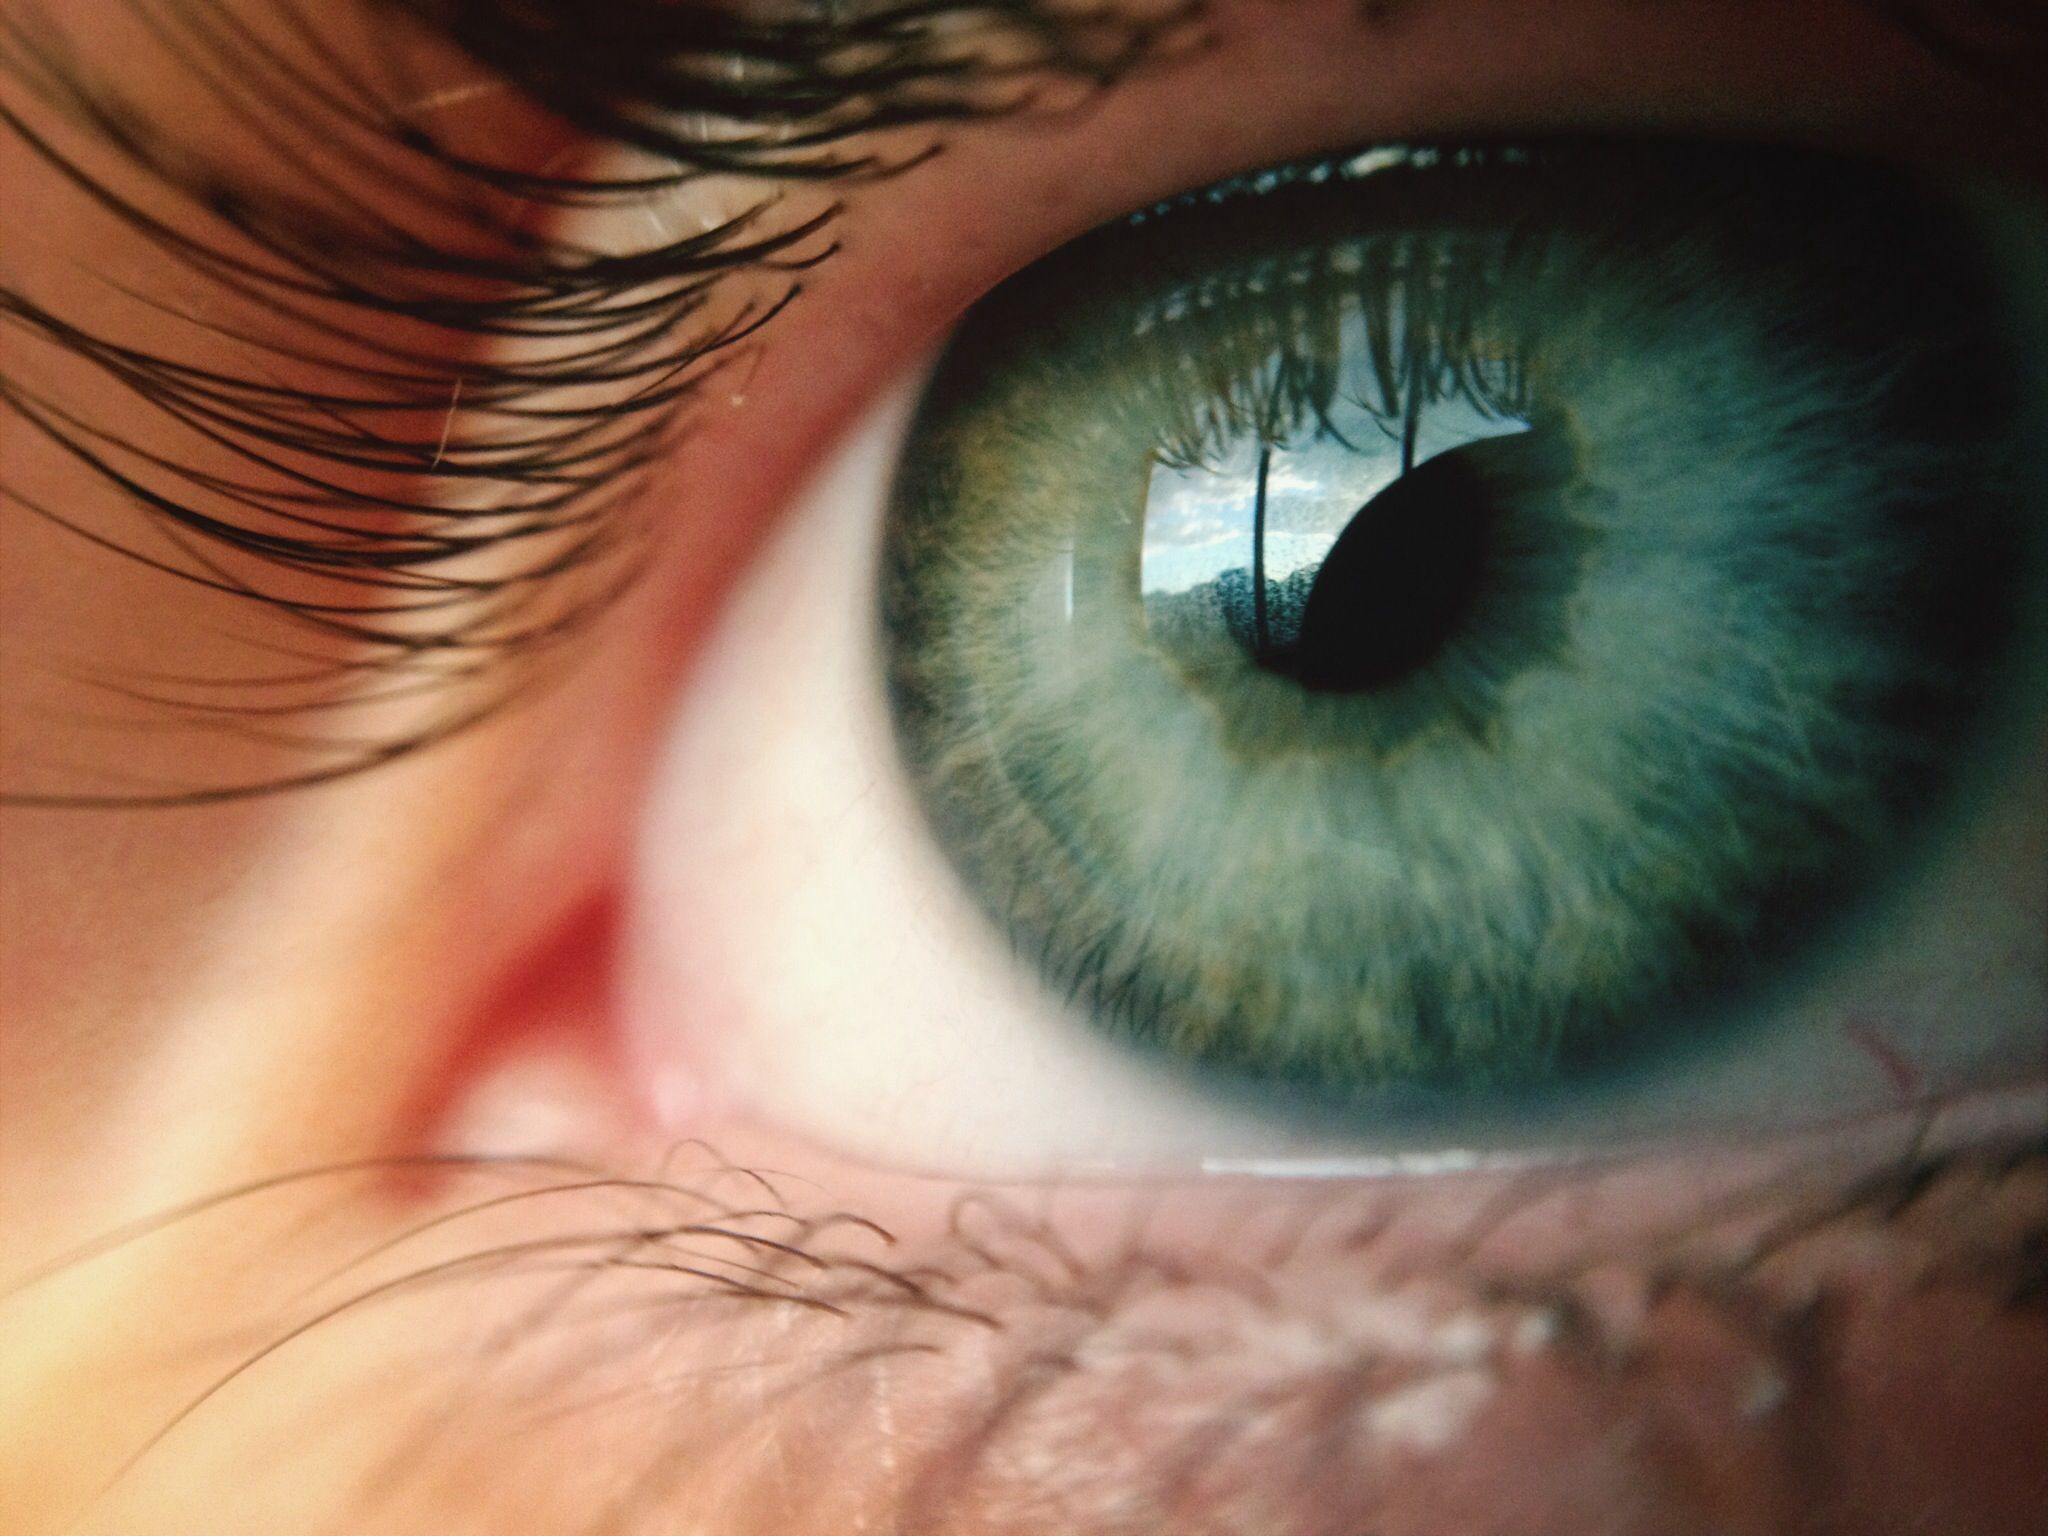 Reasons Why You May Have a Blind Spot in Your Eye